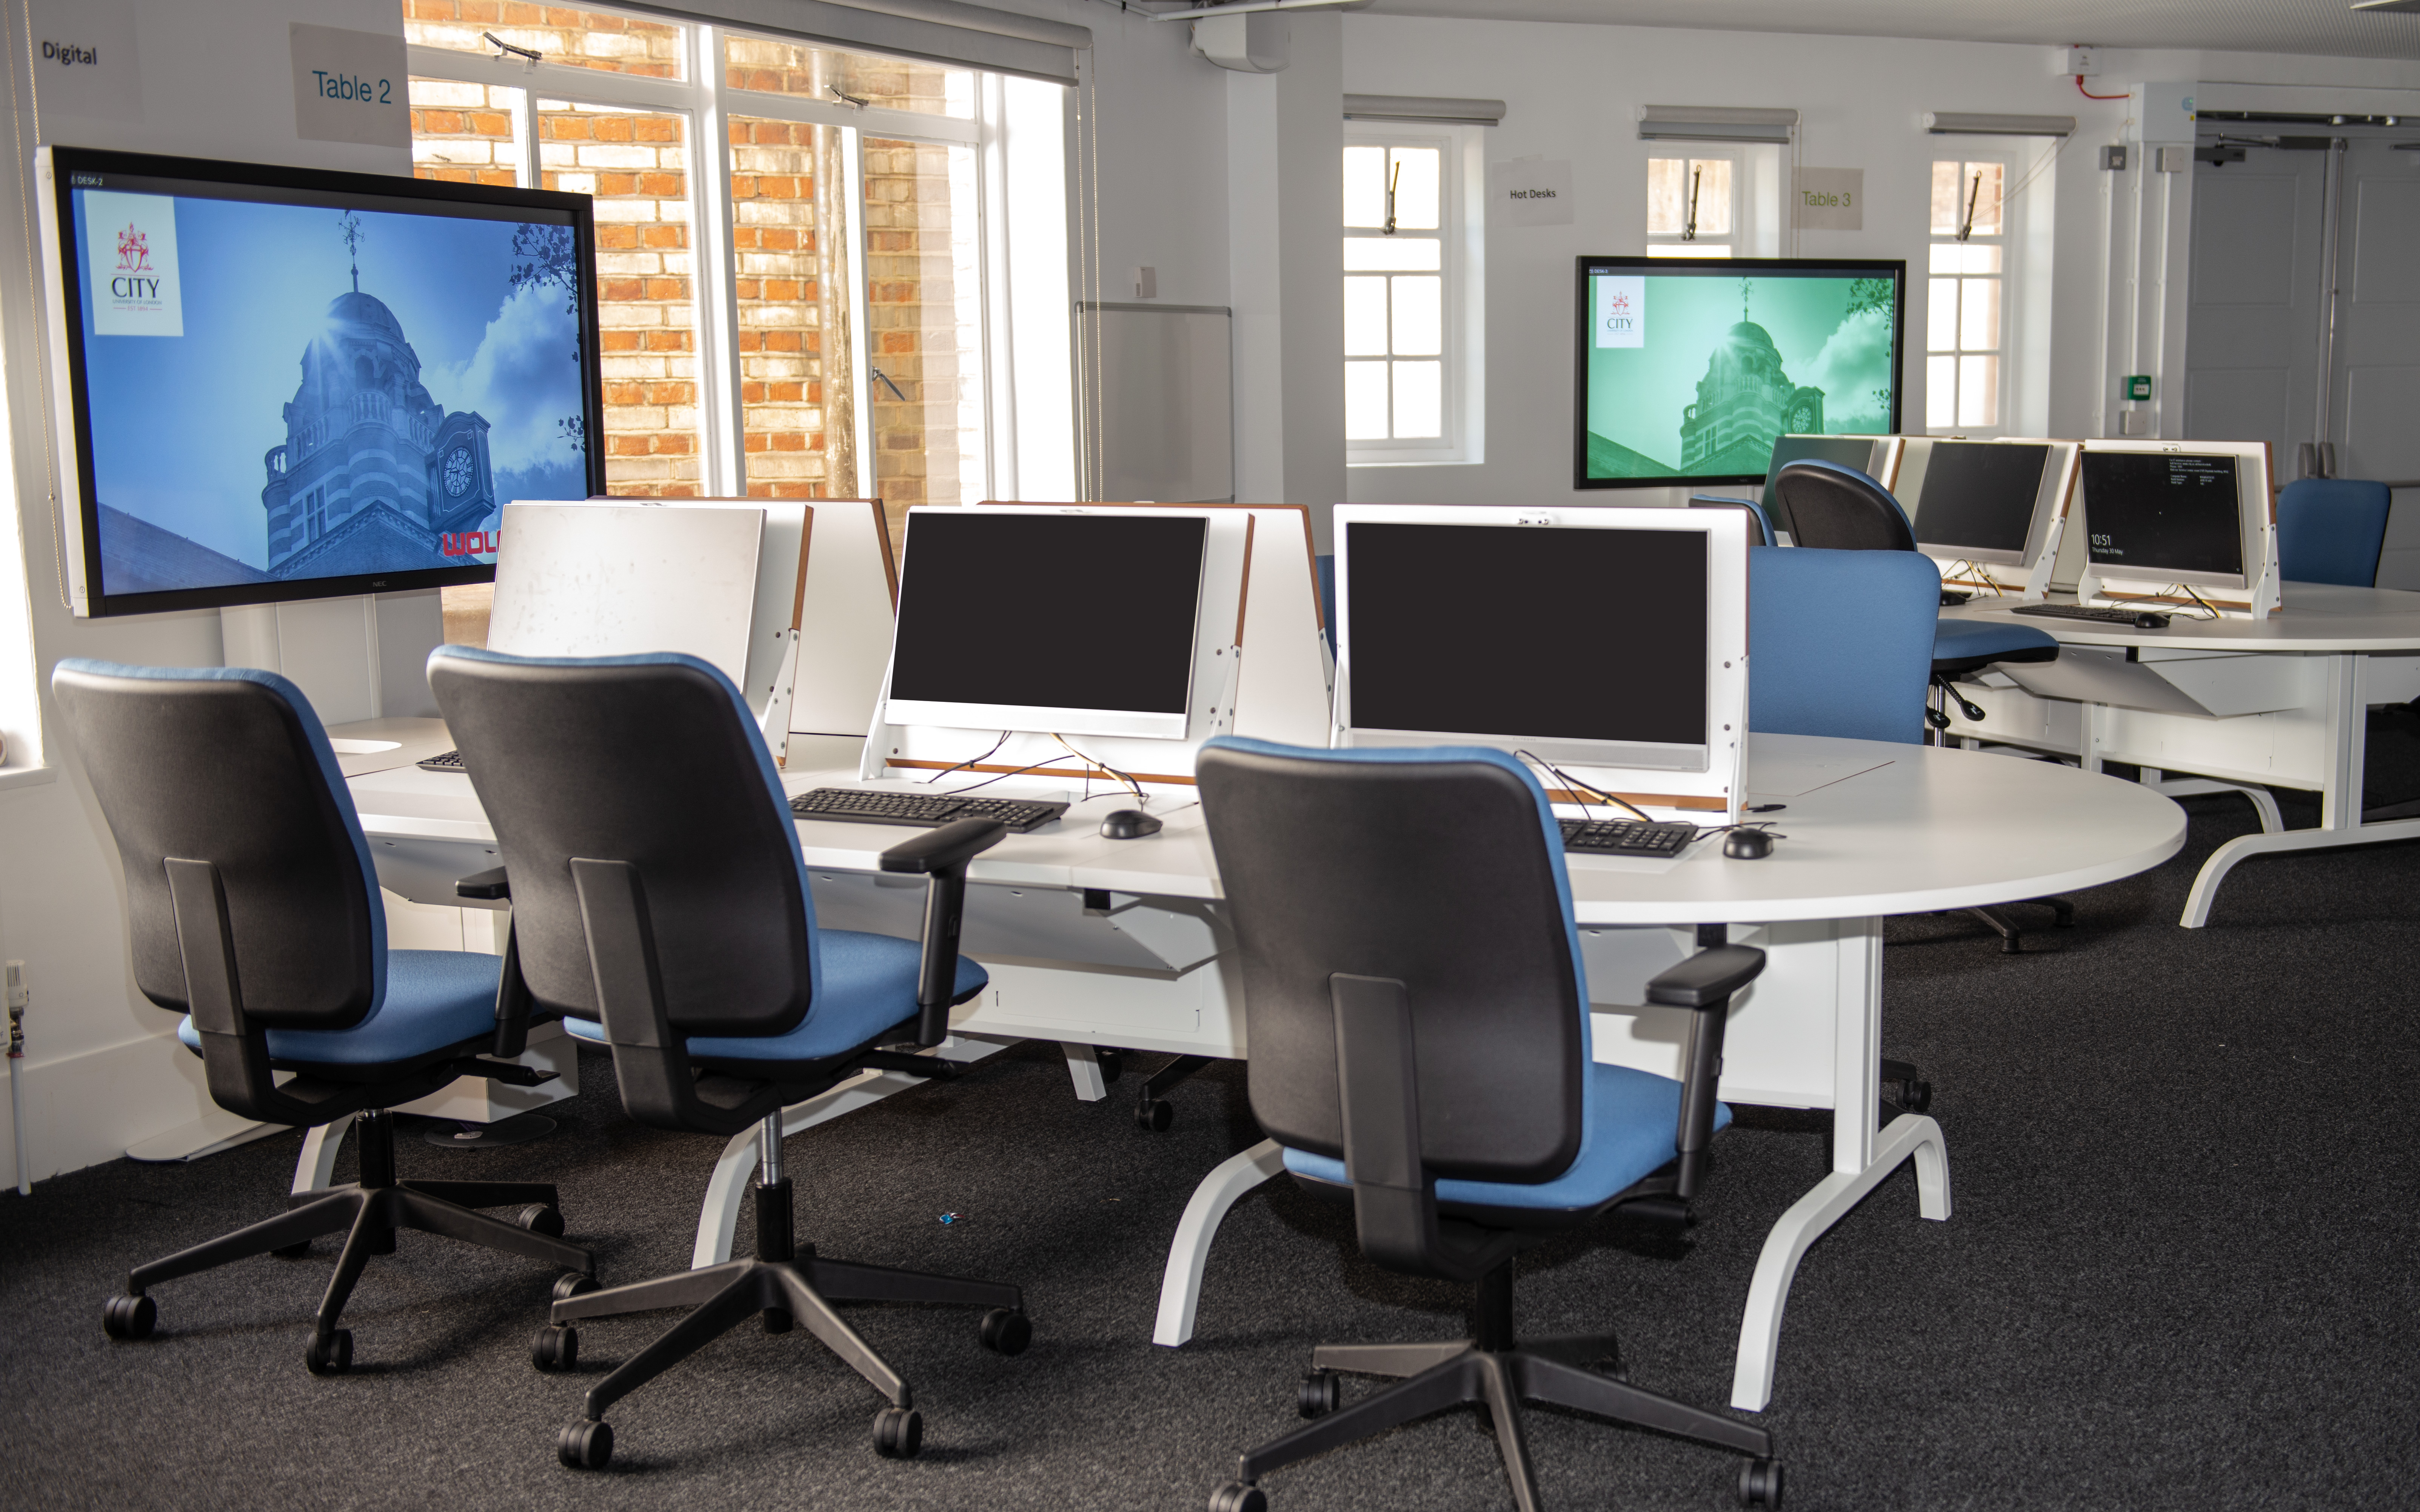 WolfVision vSolution MATRIX active learning classroom collaboration system, installed at City, University of London.